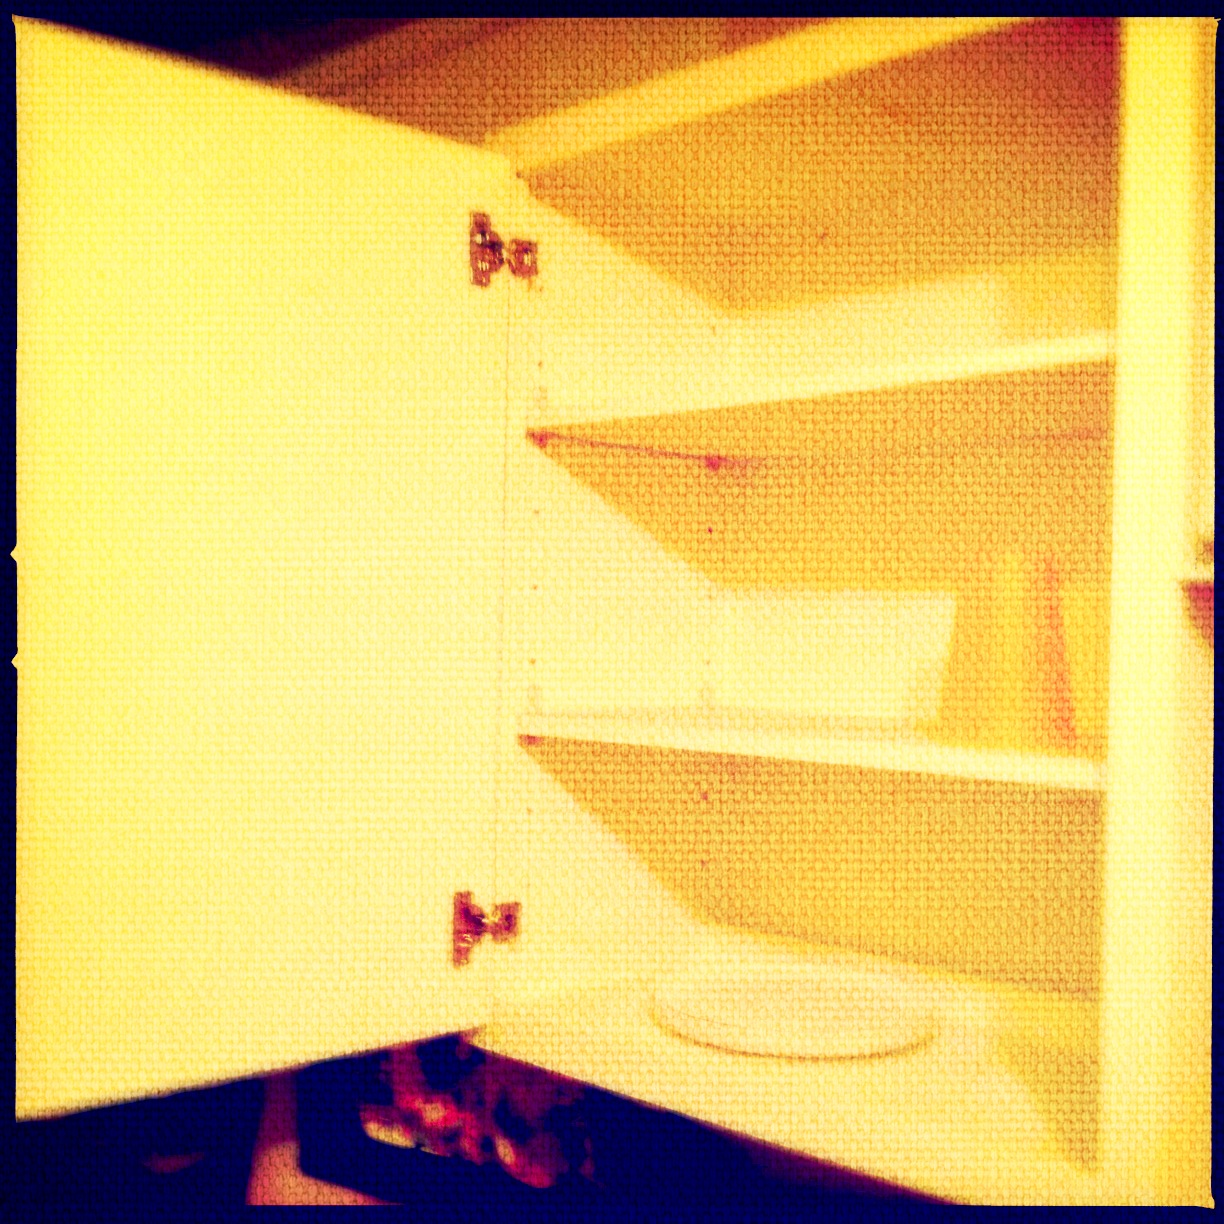 bare-cupboards-iphoneography.jpg